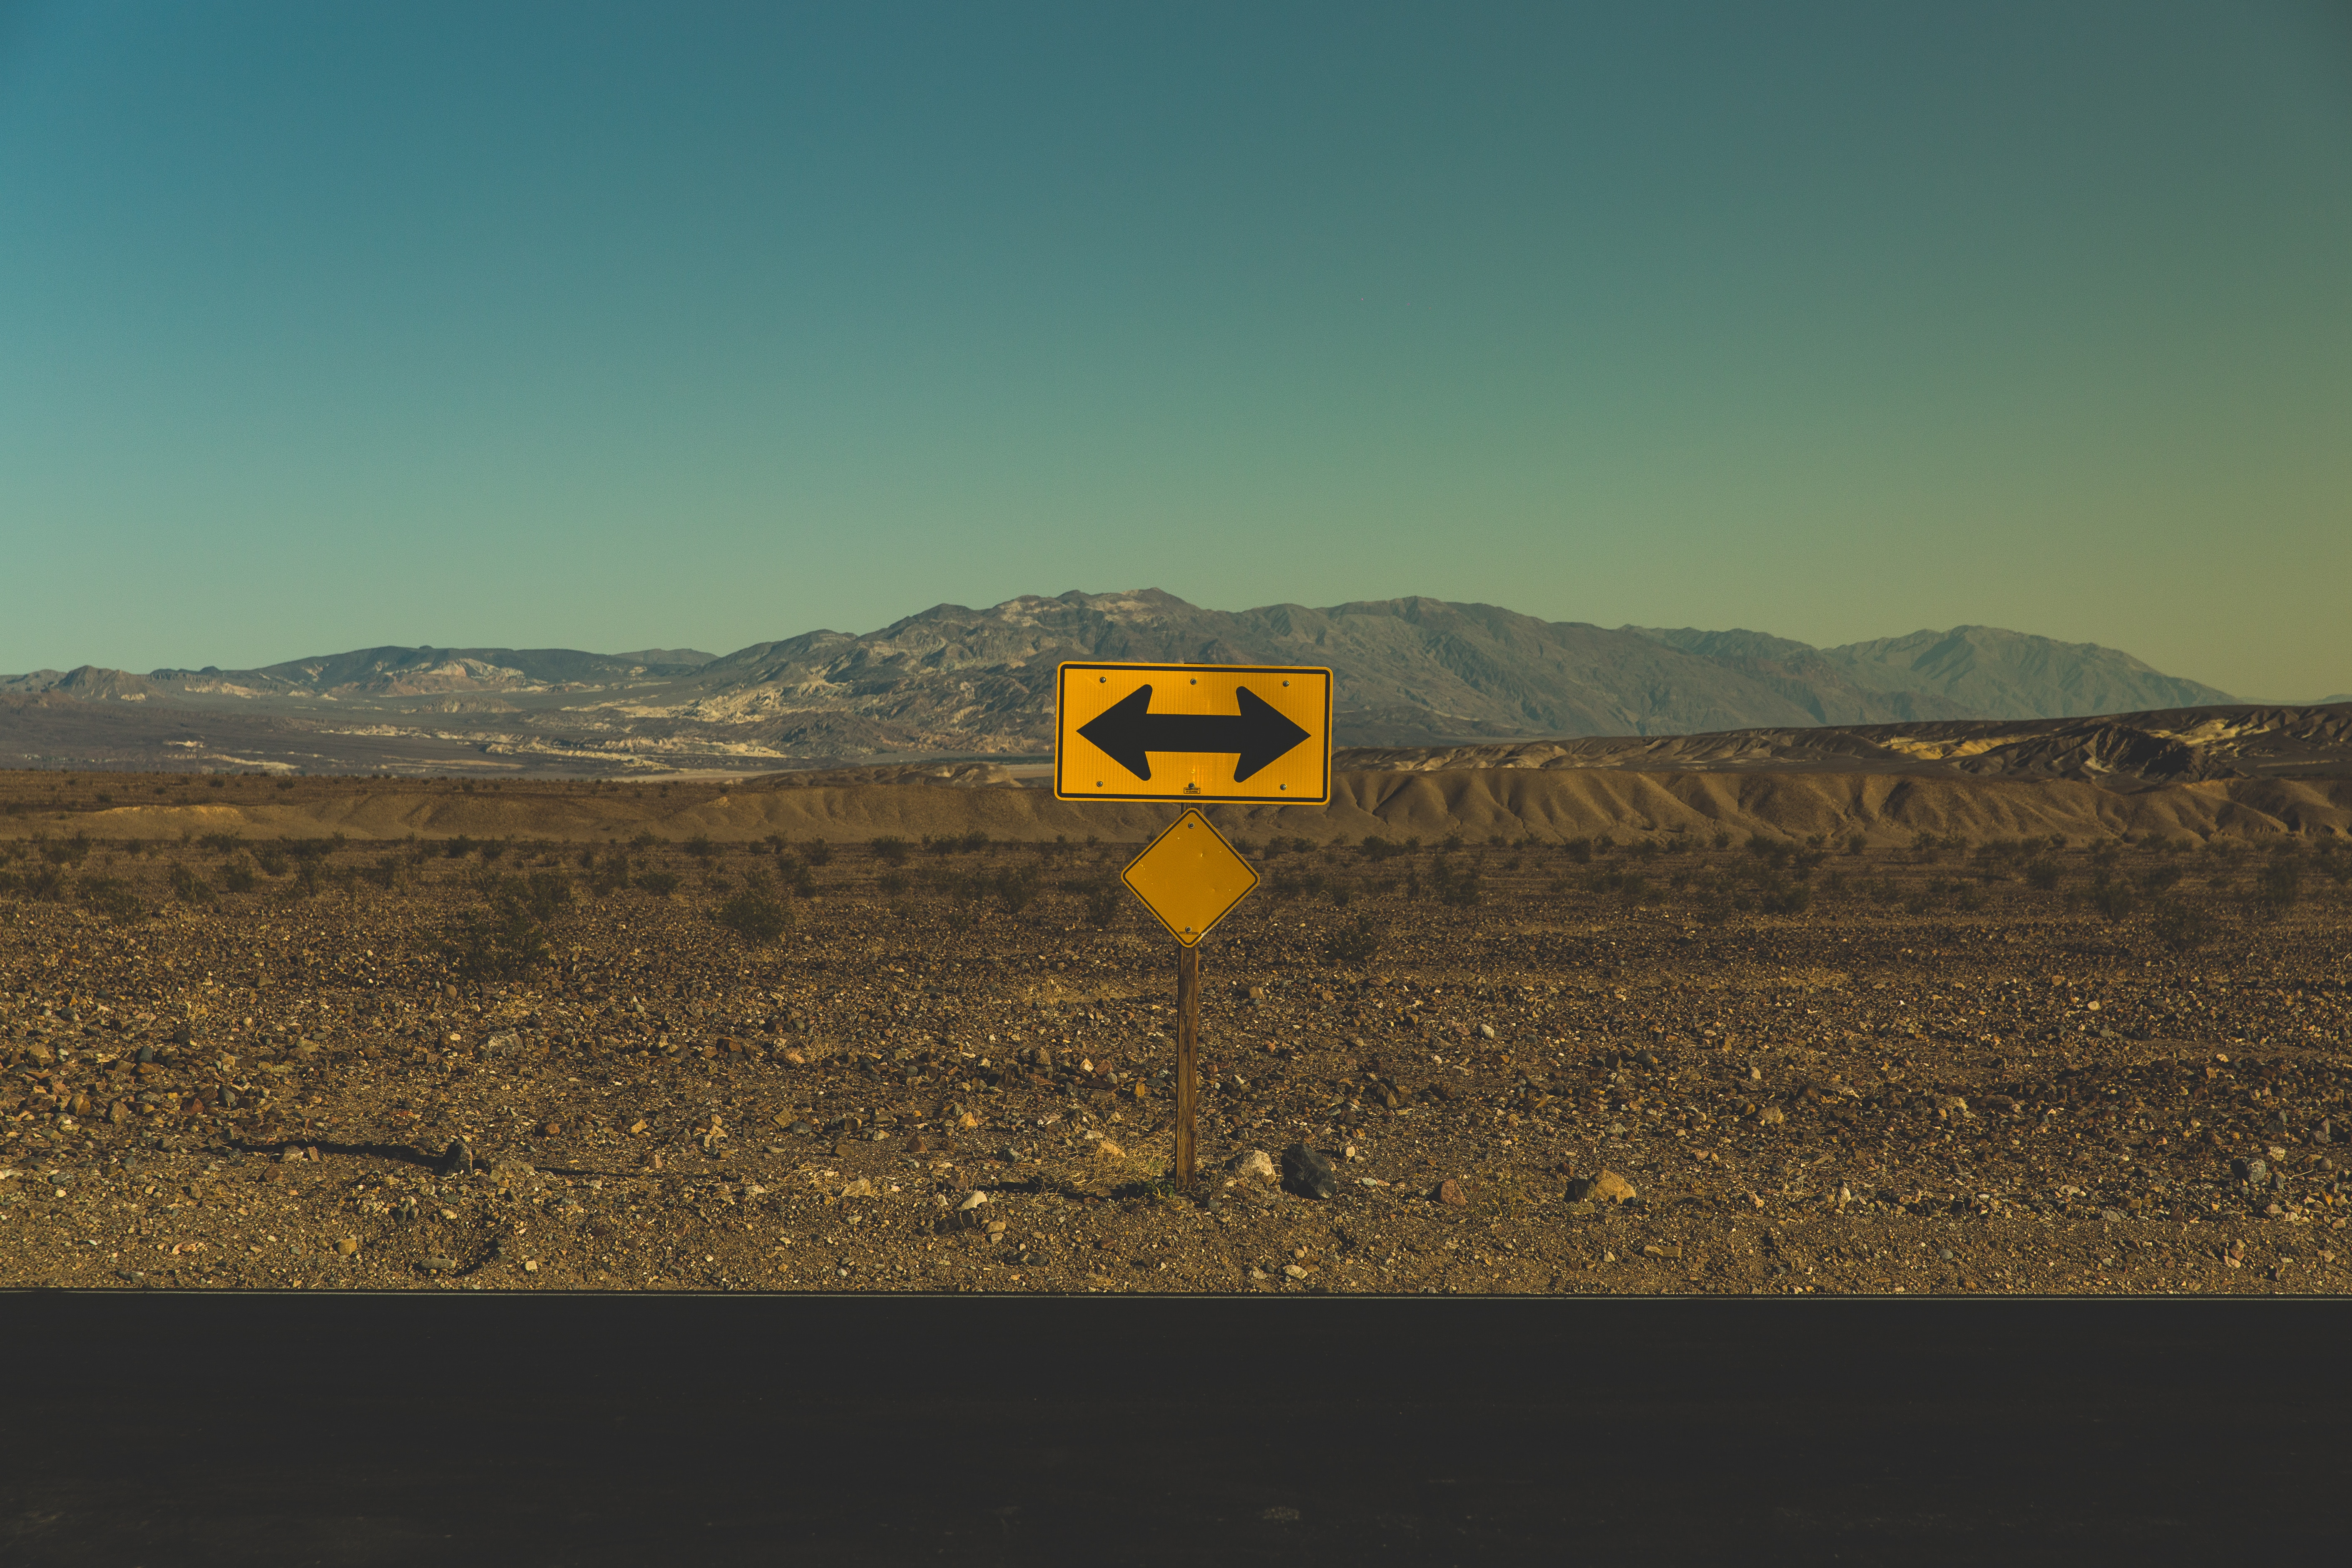 Sign At The End Of A Road Requiring A Decision To Go Left or Right